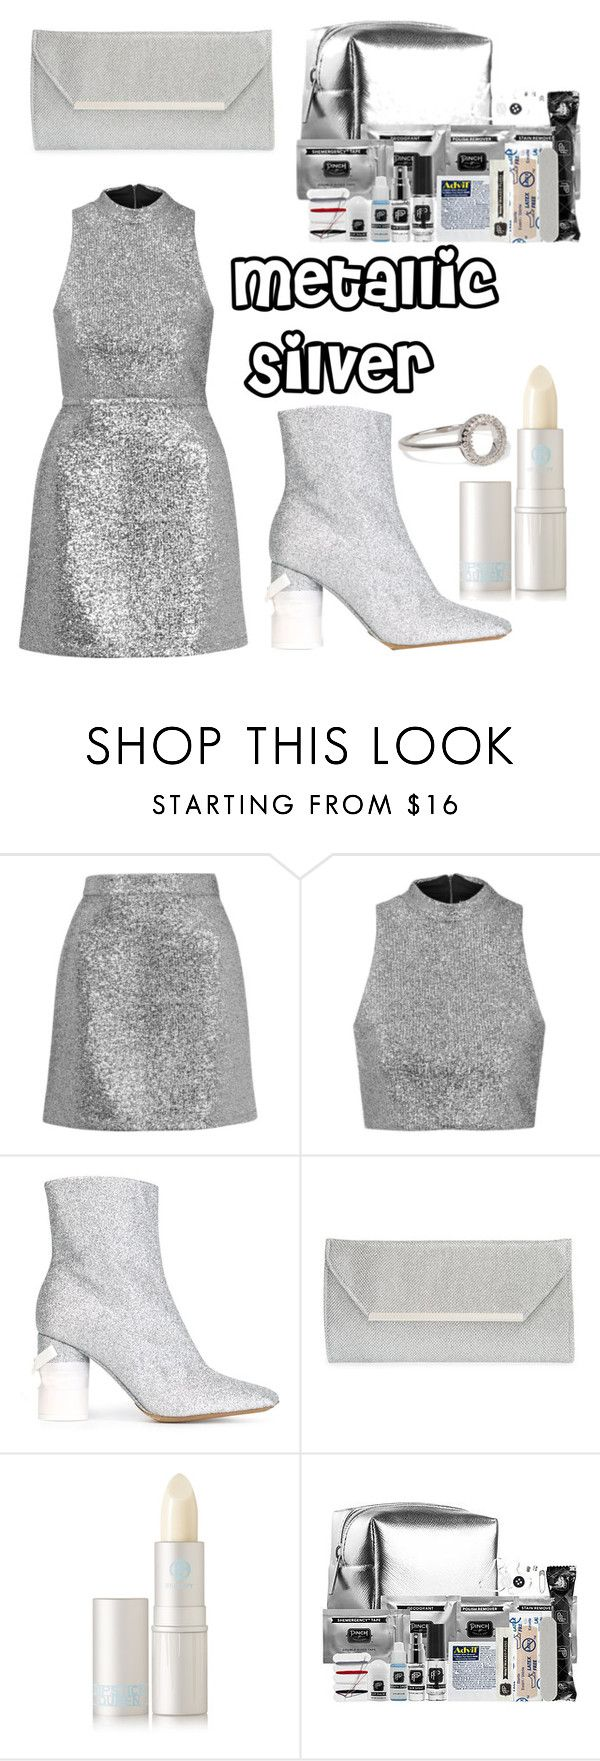 """""""Metallic silver"""" by ralisravya ❤ liked on Polyvore featuring Topshop, Maison Margiela, Glint, Lipstick Queen, Pinch Provisions and Adina Reyter"""